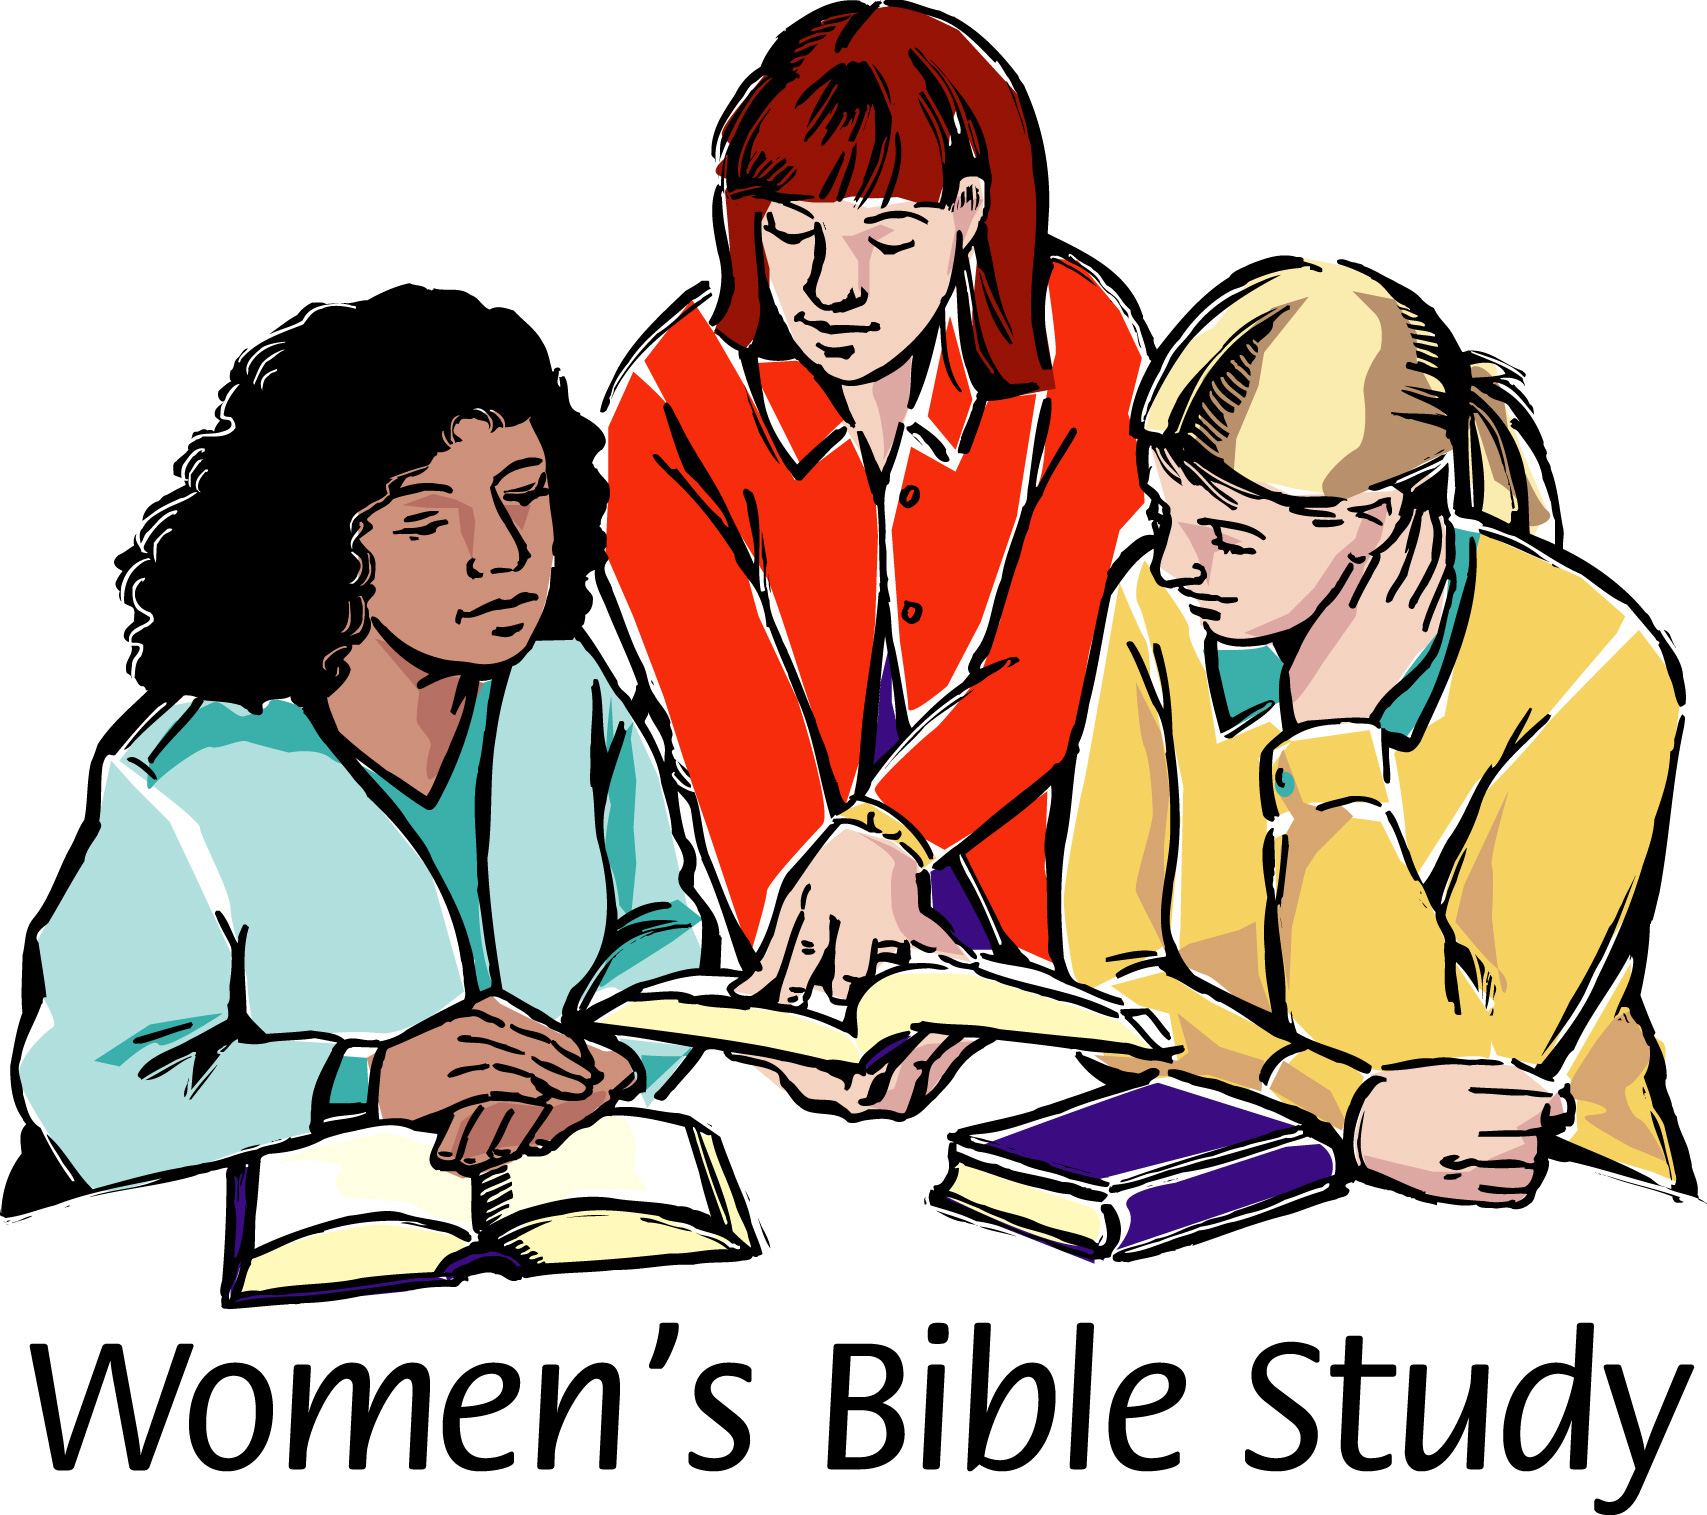 Women Group Meeting Clipart.